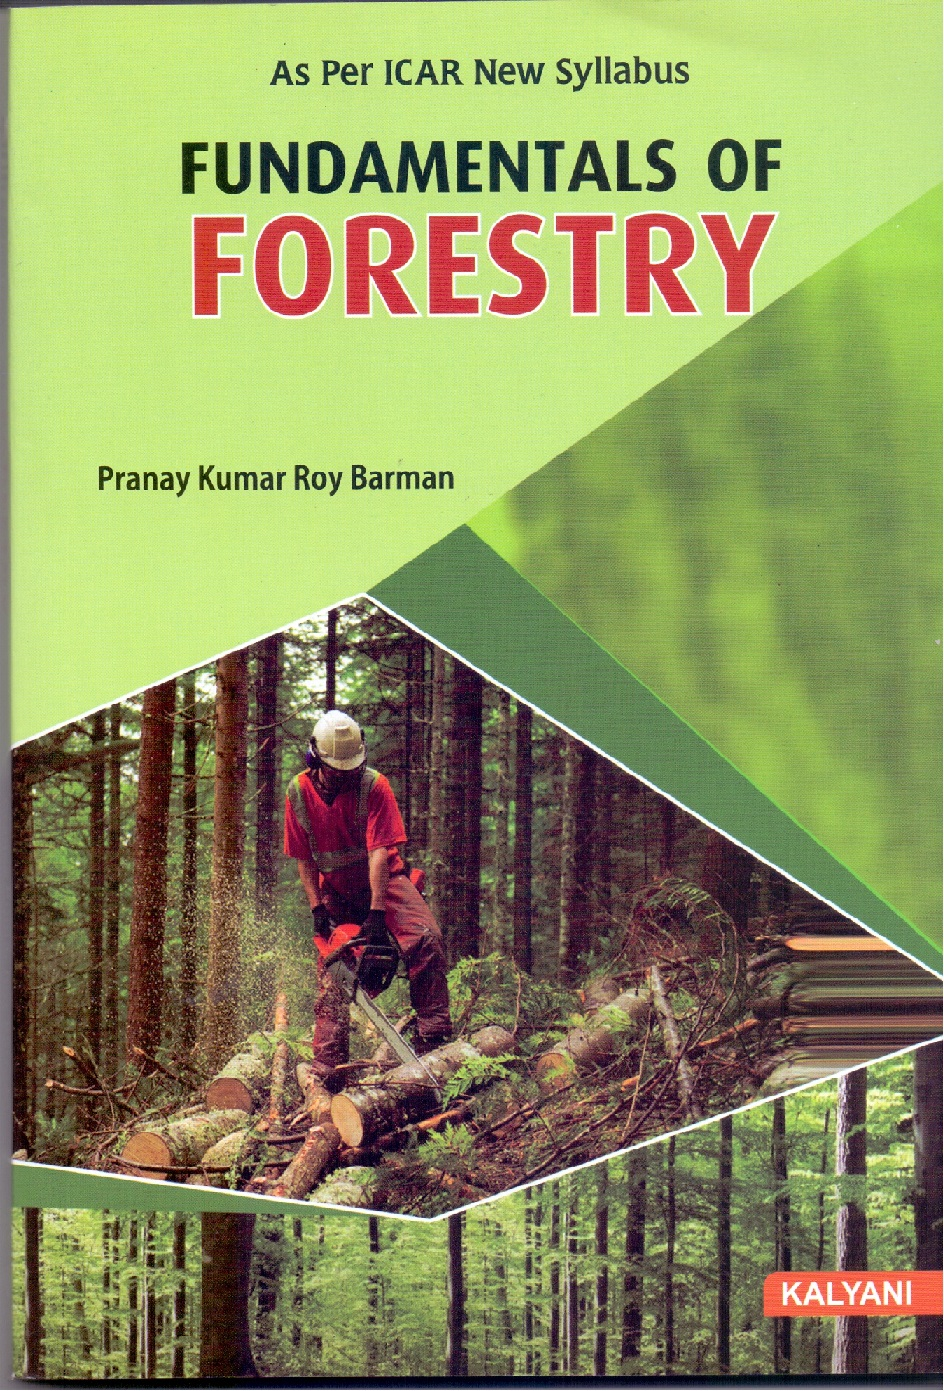 Fundamentals of Forestry (ICAR)